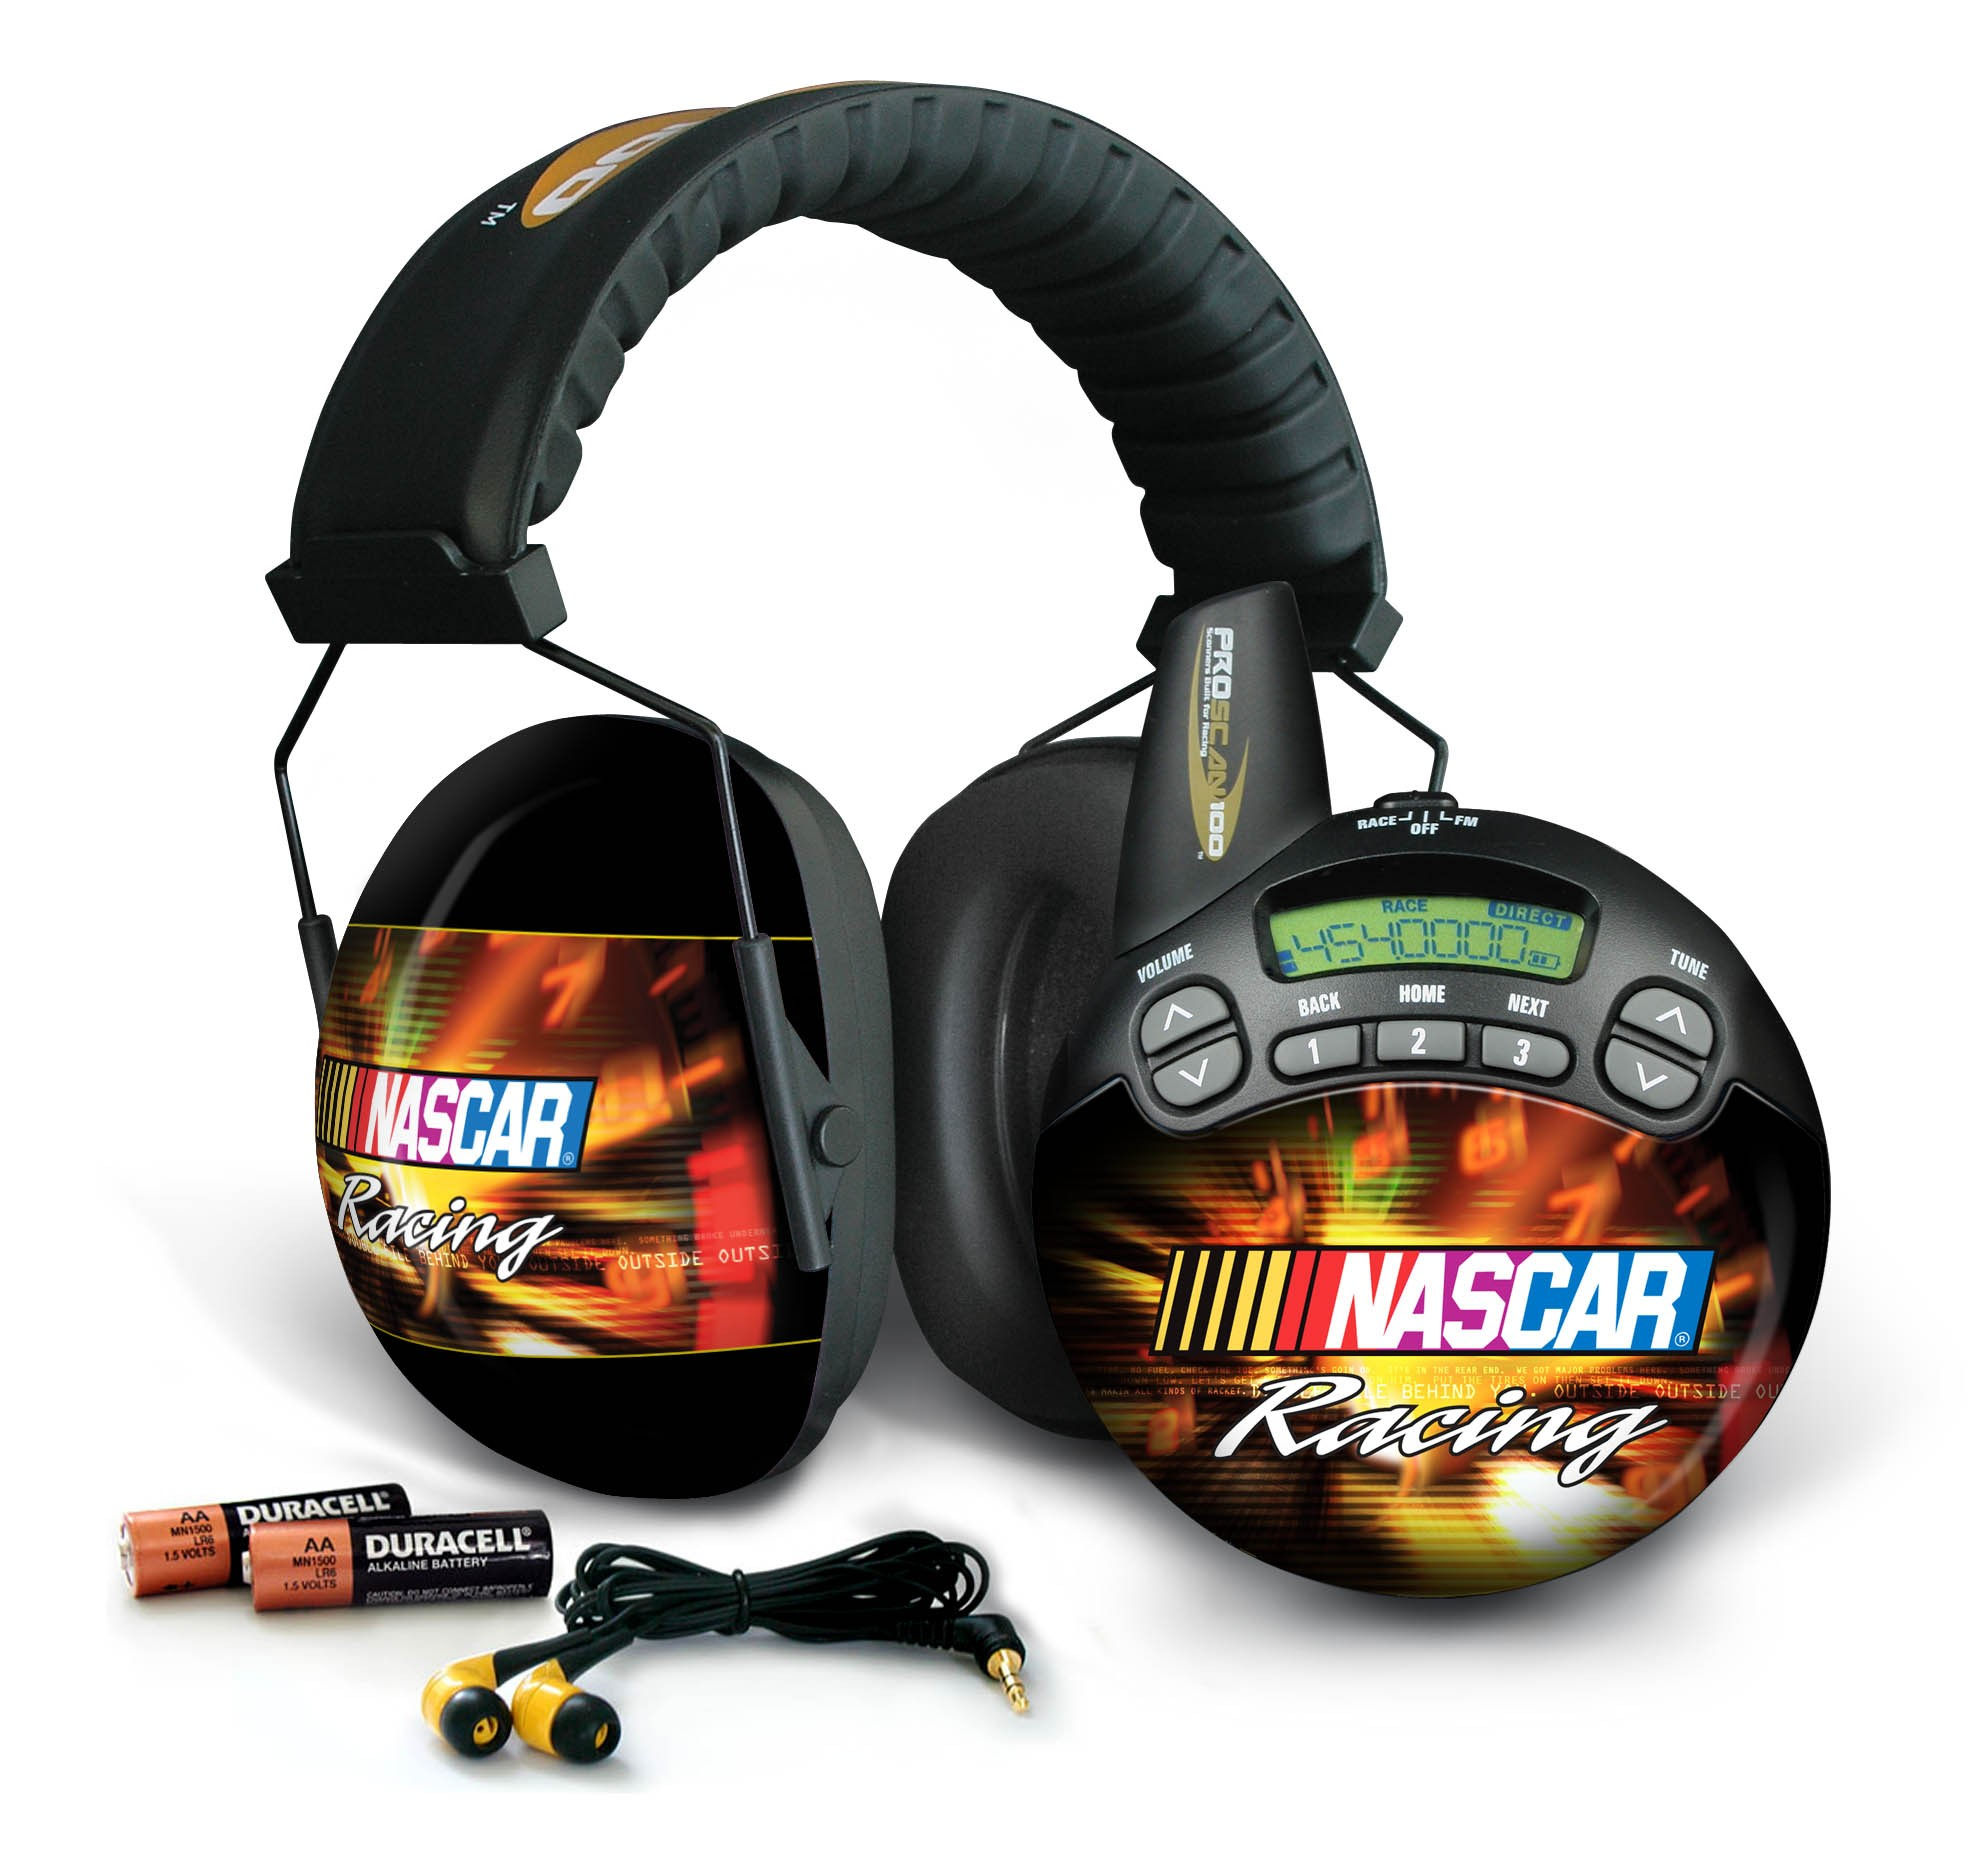 NASCAR Racing ProScan 100 Trackside Scanner and Earmuff